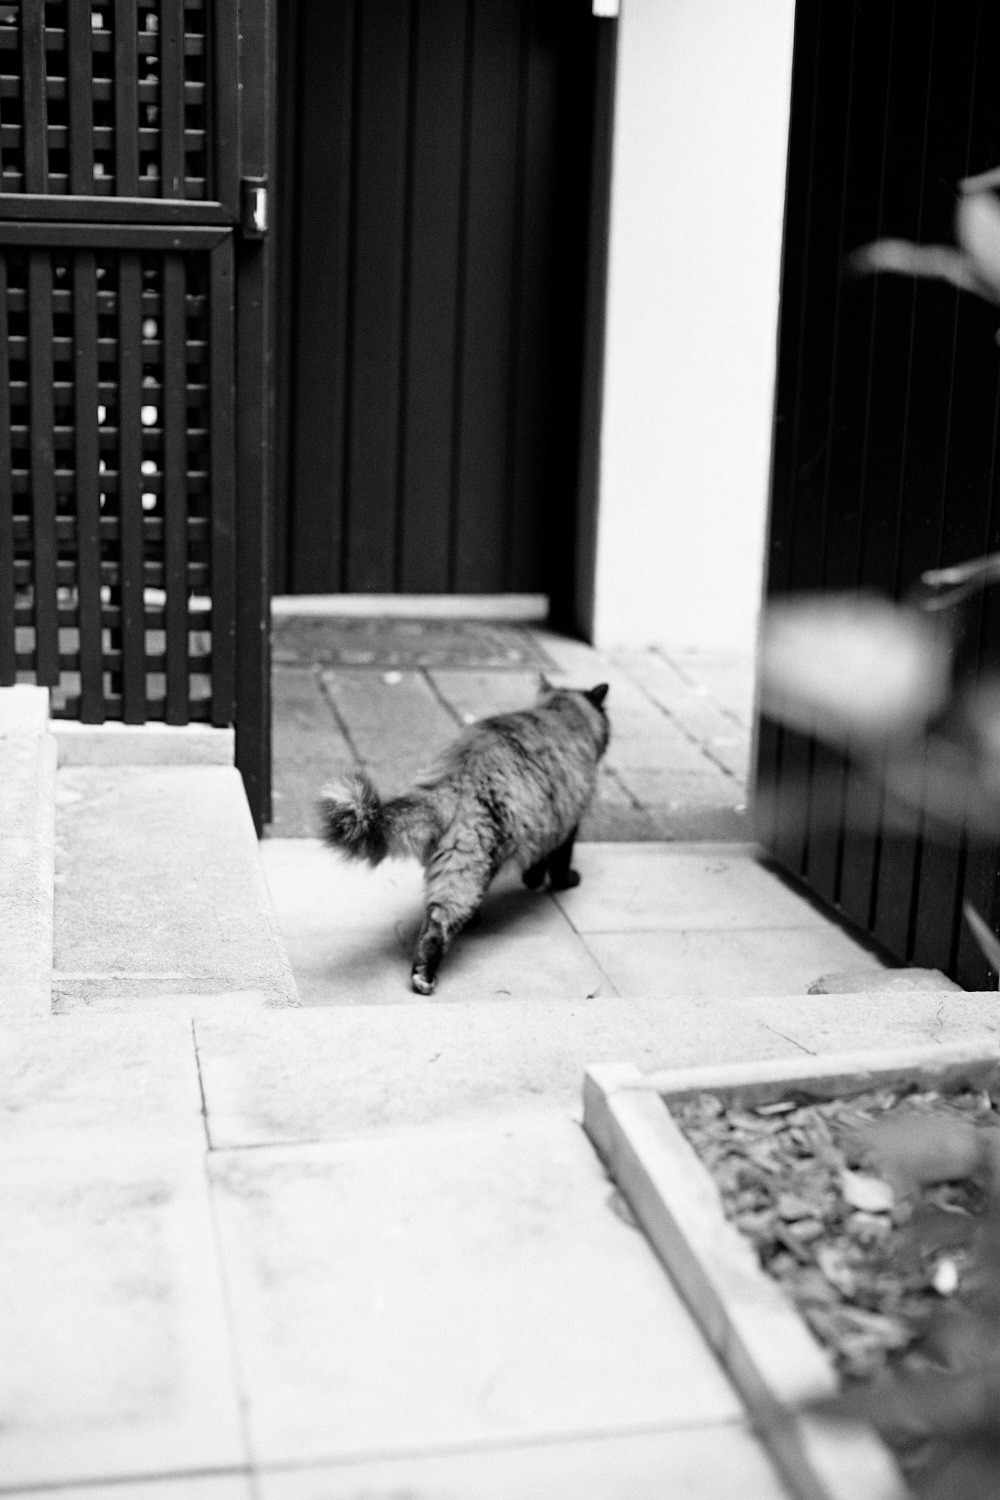 Black and white of cat exiting open gate